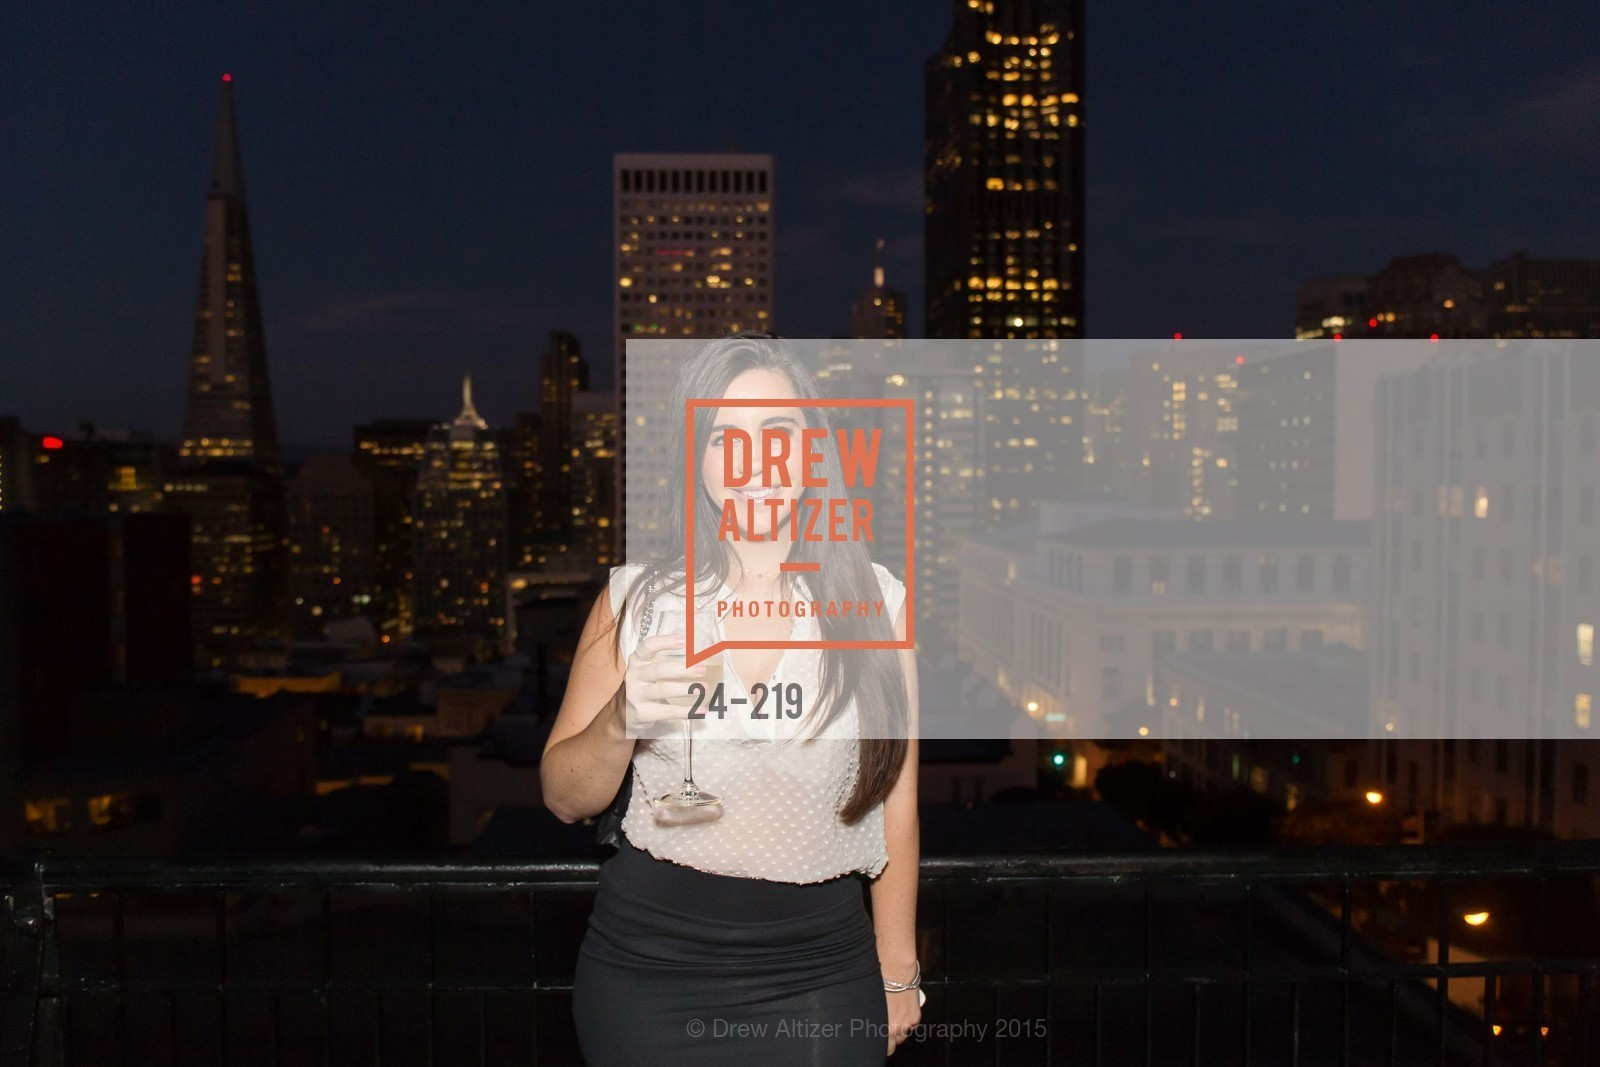 Samantha DeBianchi, Champagne Reception & Screening of Million Dollar Listing San Francisco, University Club. 800 Powell St, August 5th, 2015,Drew Altizer, Drew Altizer Photography, full-service event agency, private events, San Francisco photographer, photographer California